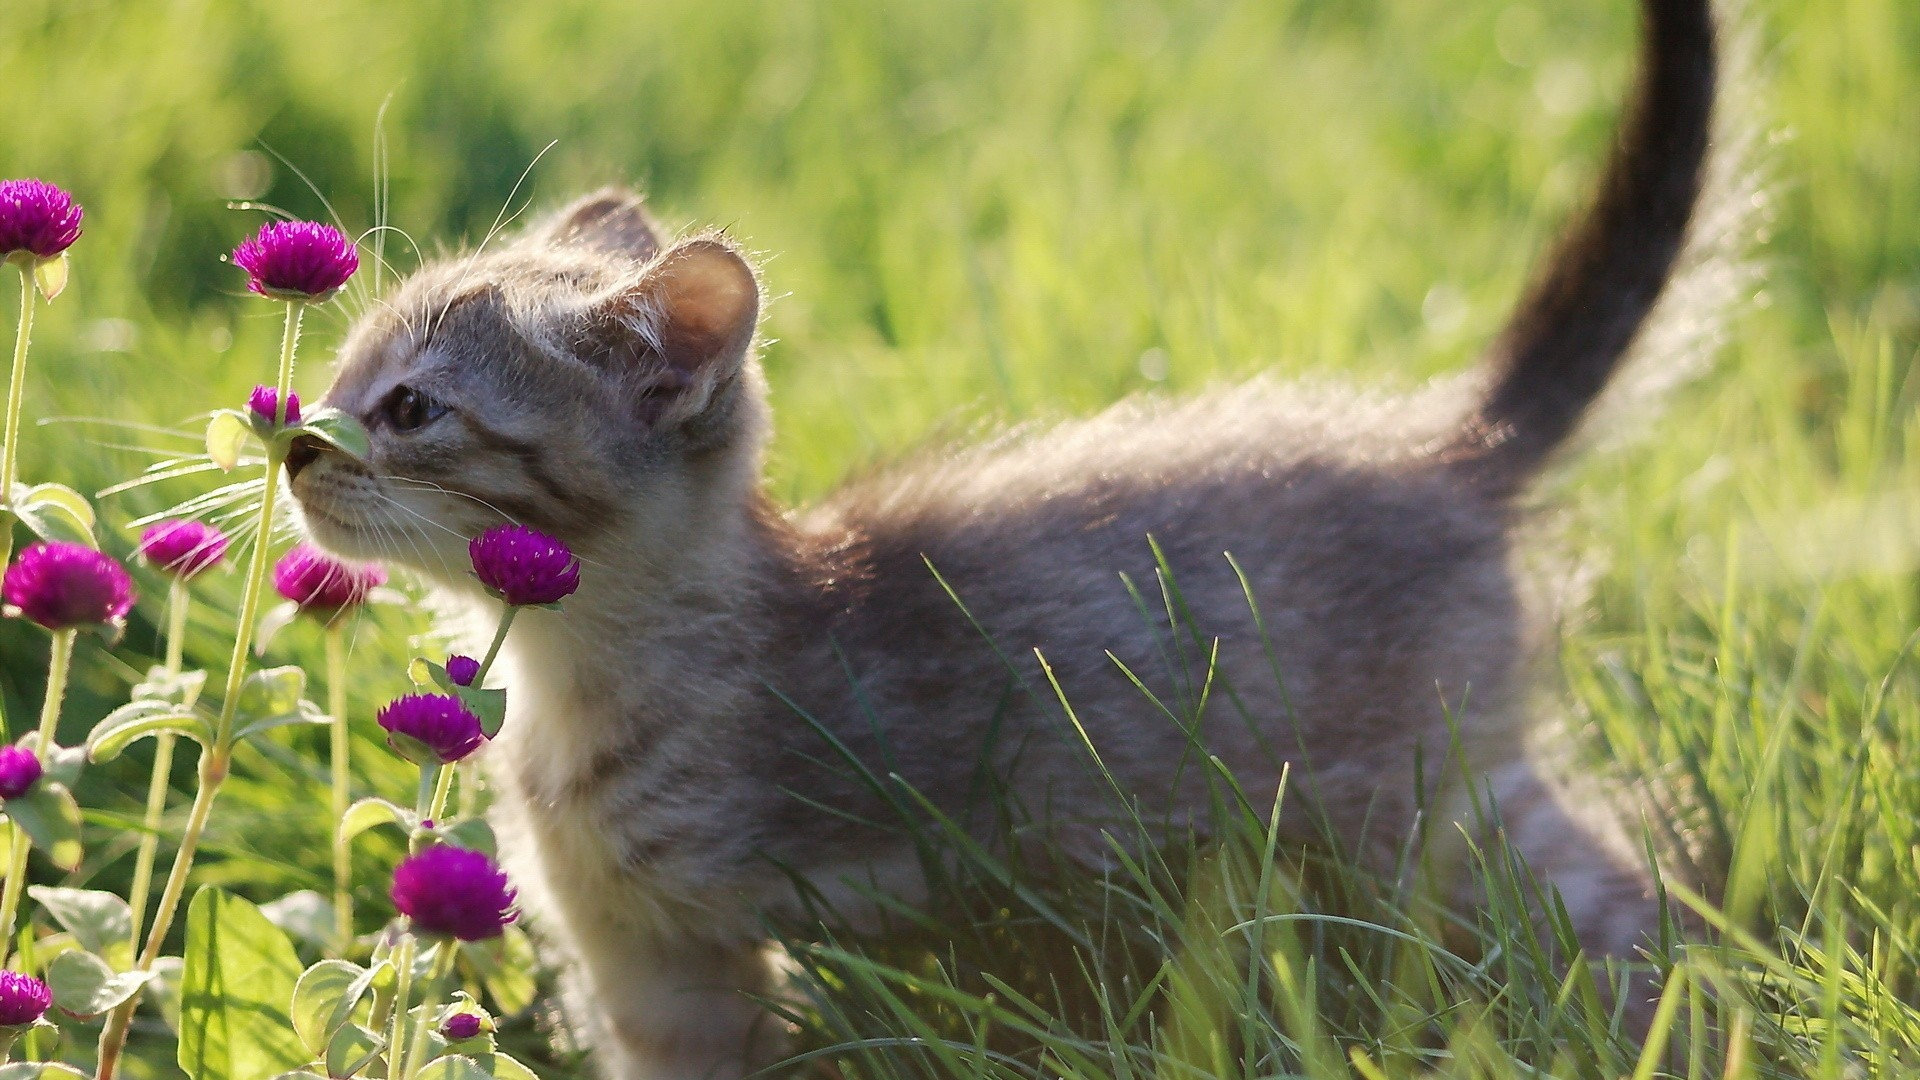 kitten-gray-grass-http-www-u-org-kitten-gray-grass-wallpaper-wp3807448